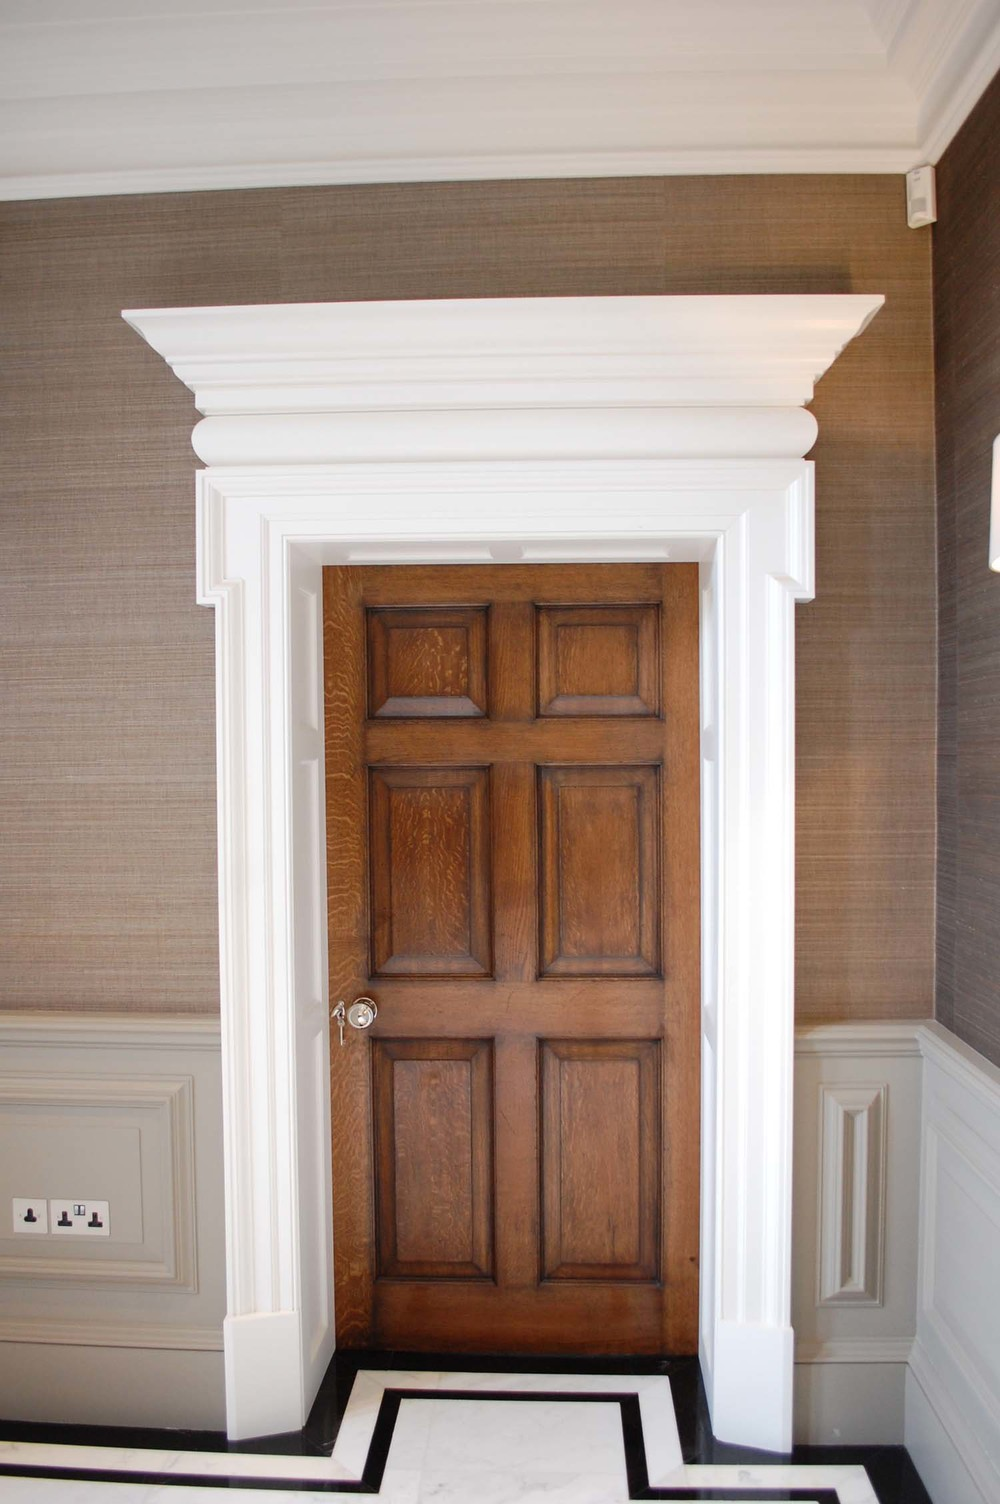 Six panel Georgian oak door with painted surround : georgian door - pezcame.com